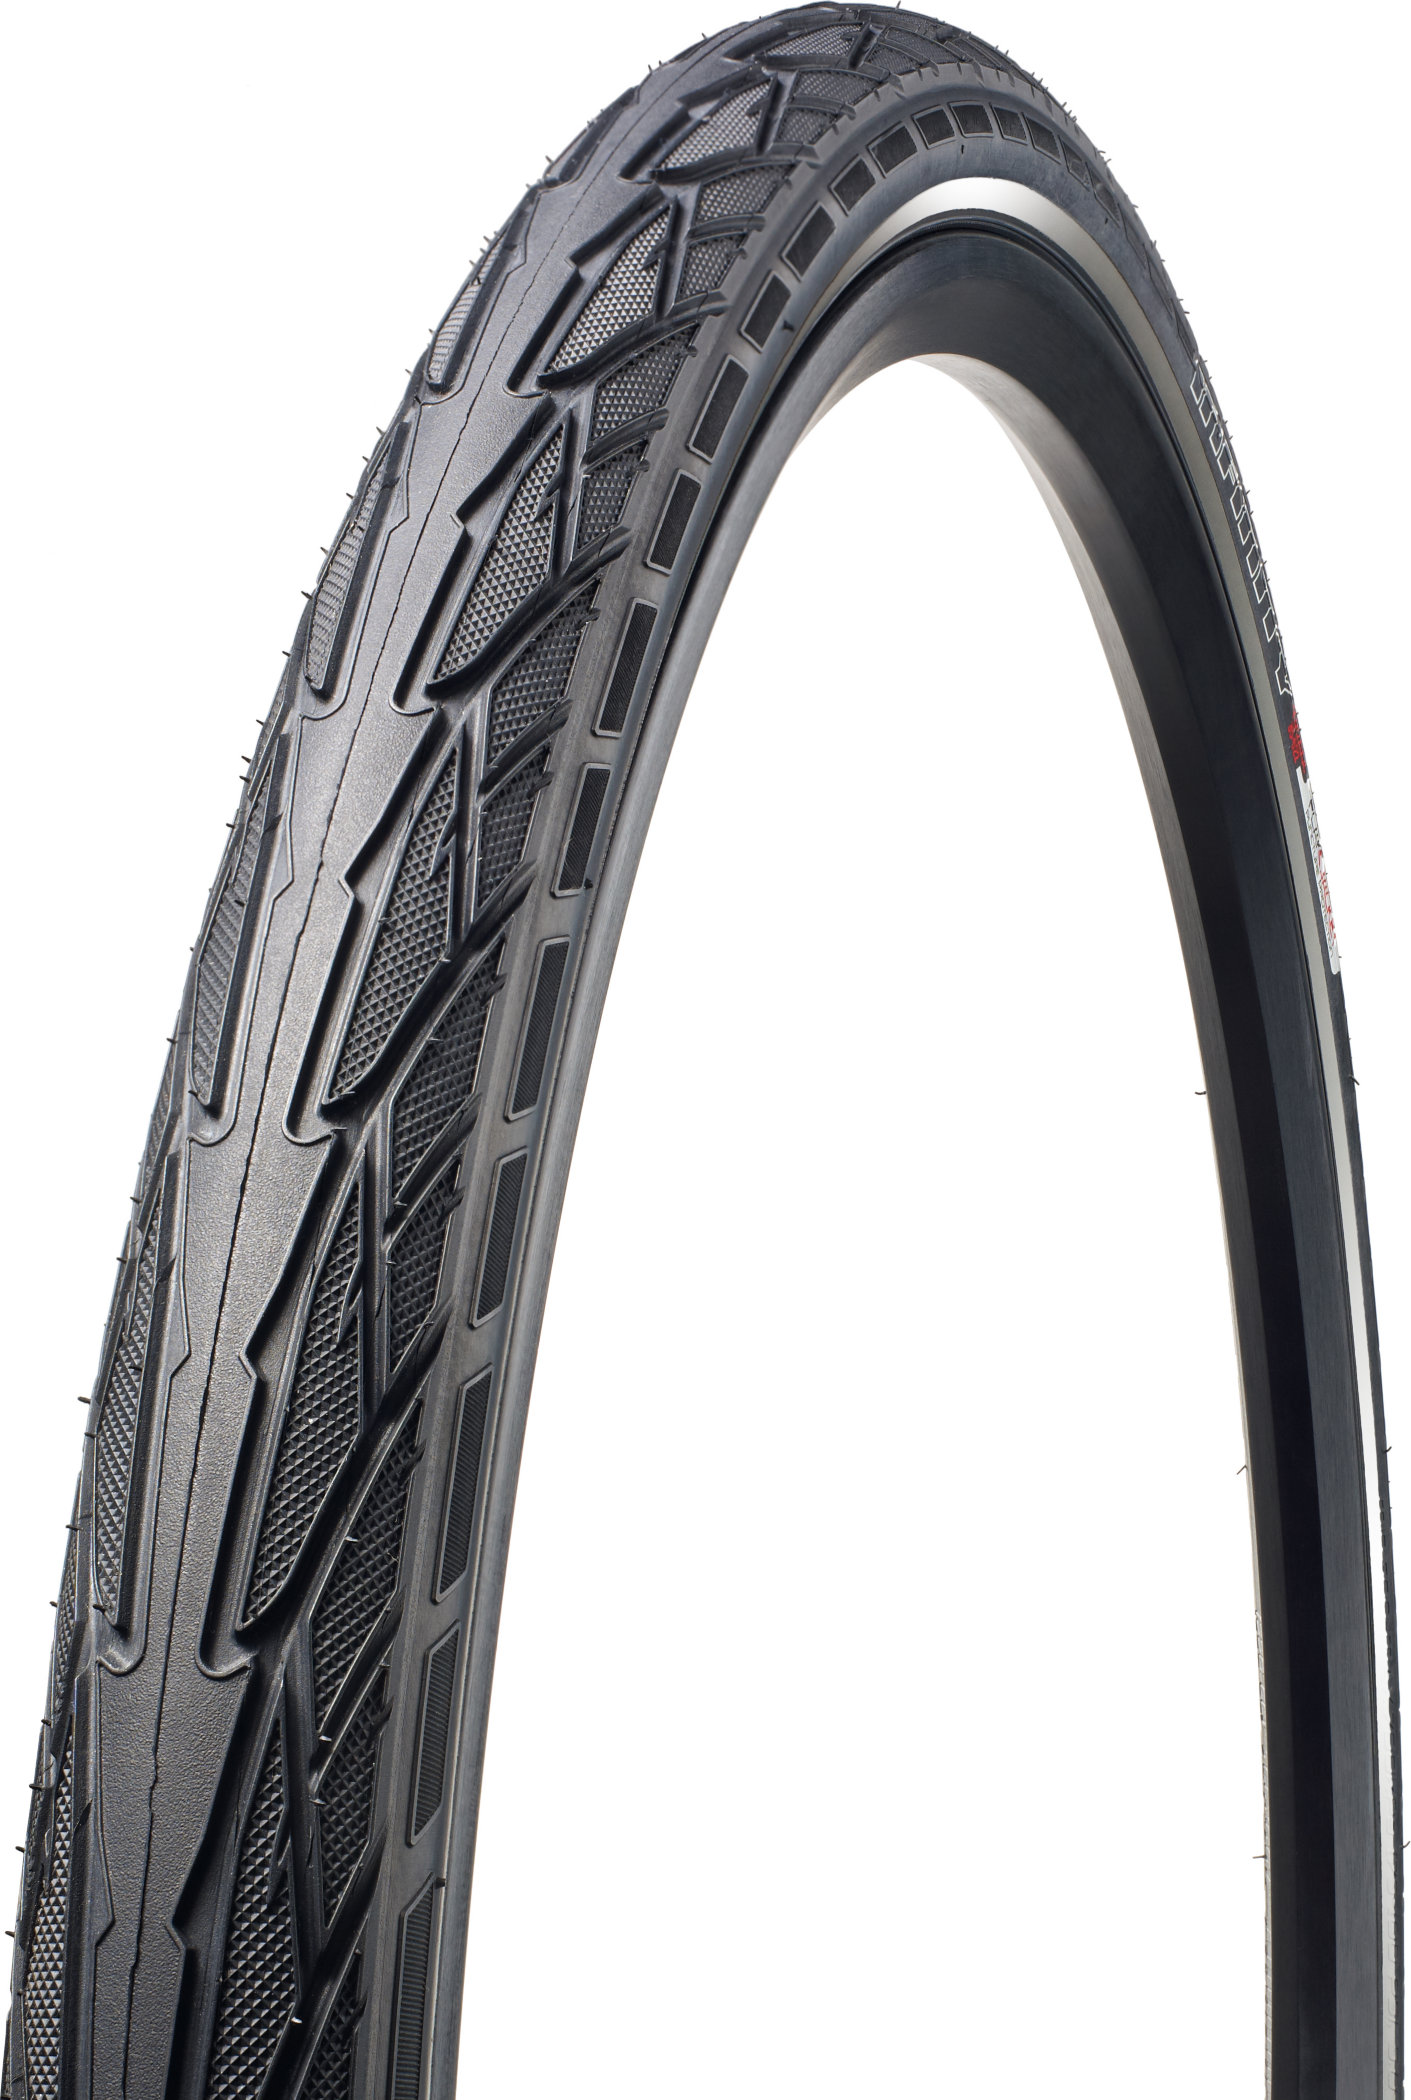 SPECIALIZED INFINITY REFLECT TIRE 700X38C - SPECIALIZED INFINITY REFLECT TIRE 700X38C